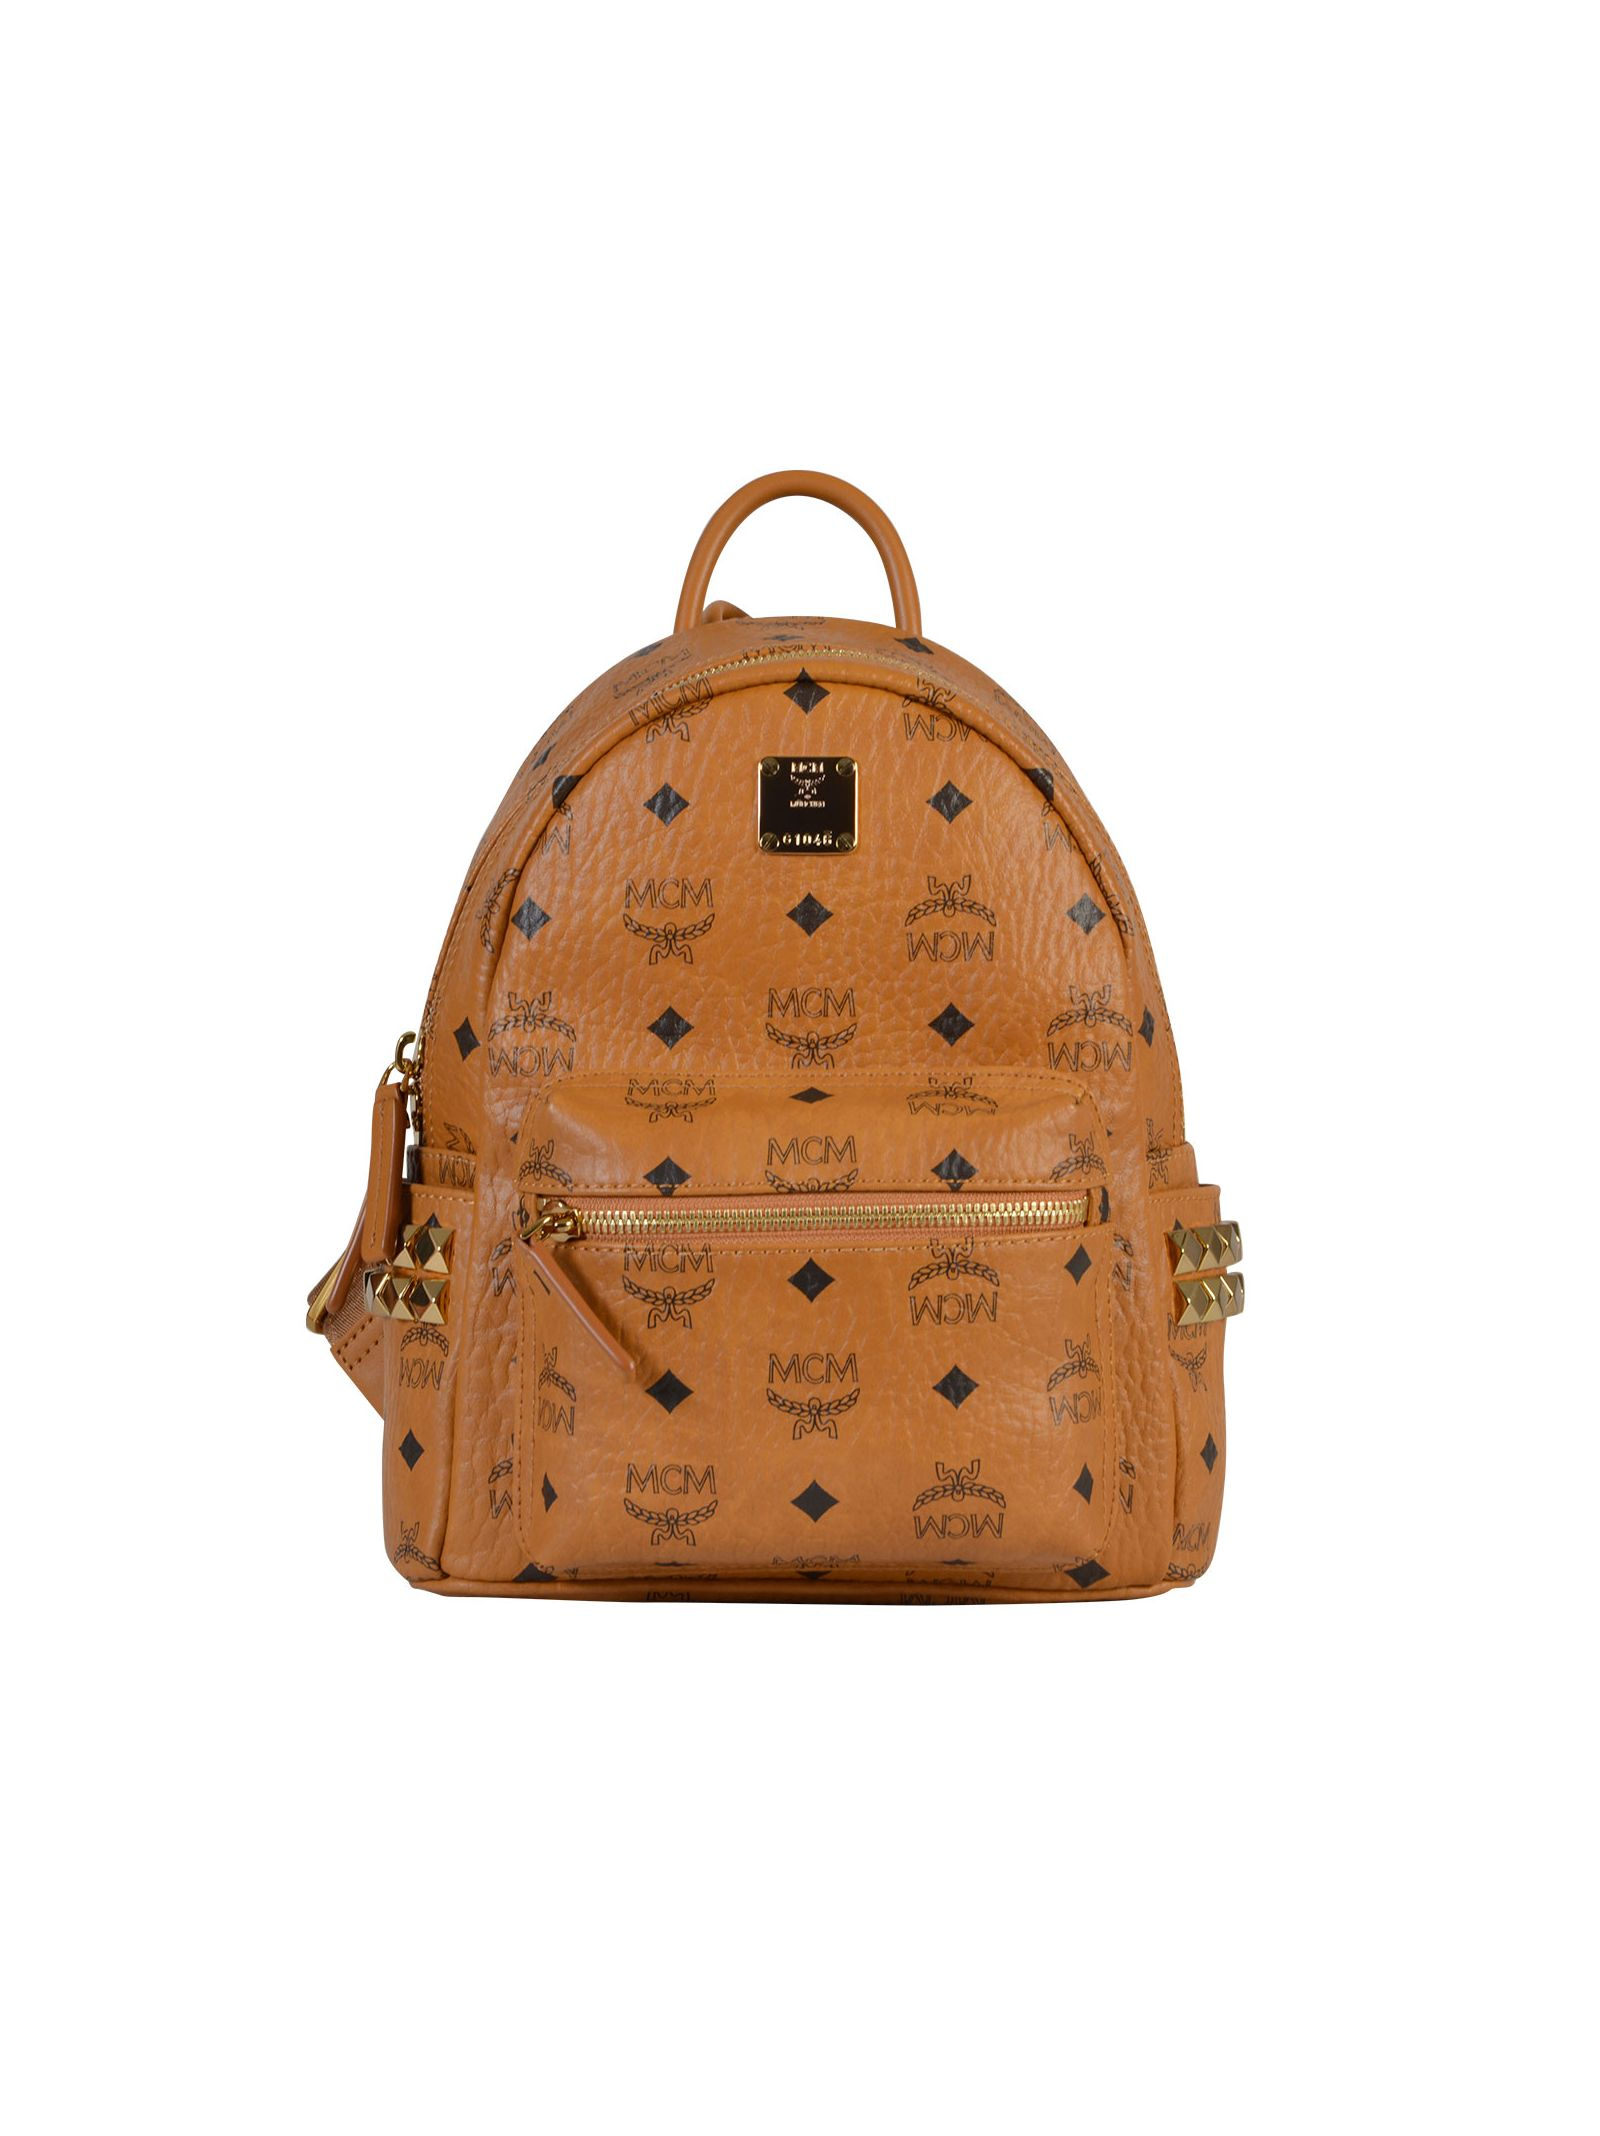 Stark small backpack - adjustable strap - zip fastening - front pocket - metallic studs - measurements: 22x28x15 cm, straps 76 cm